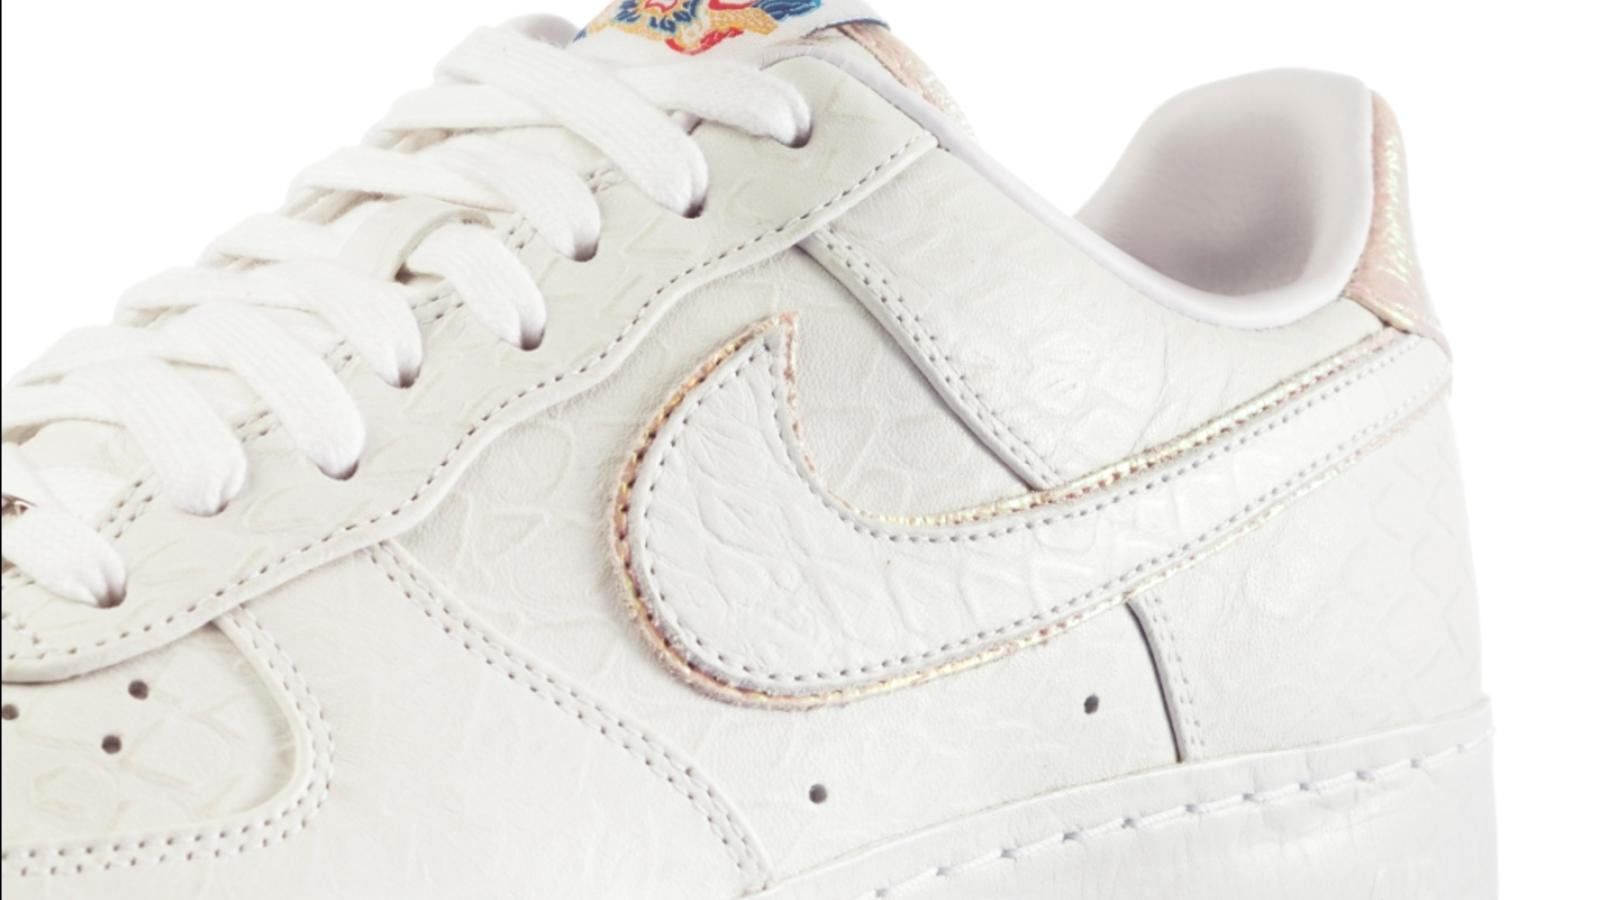 Introducing the Nike Air Force 1 'Year of the Dragon' Fall